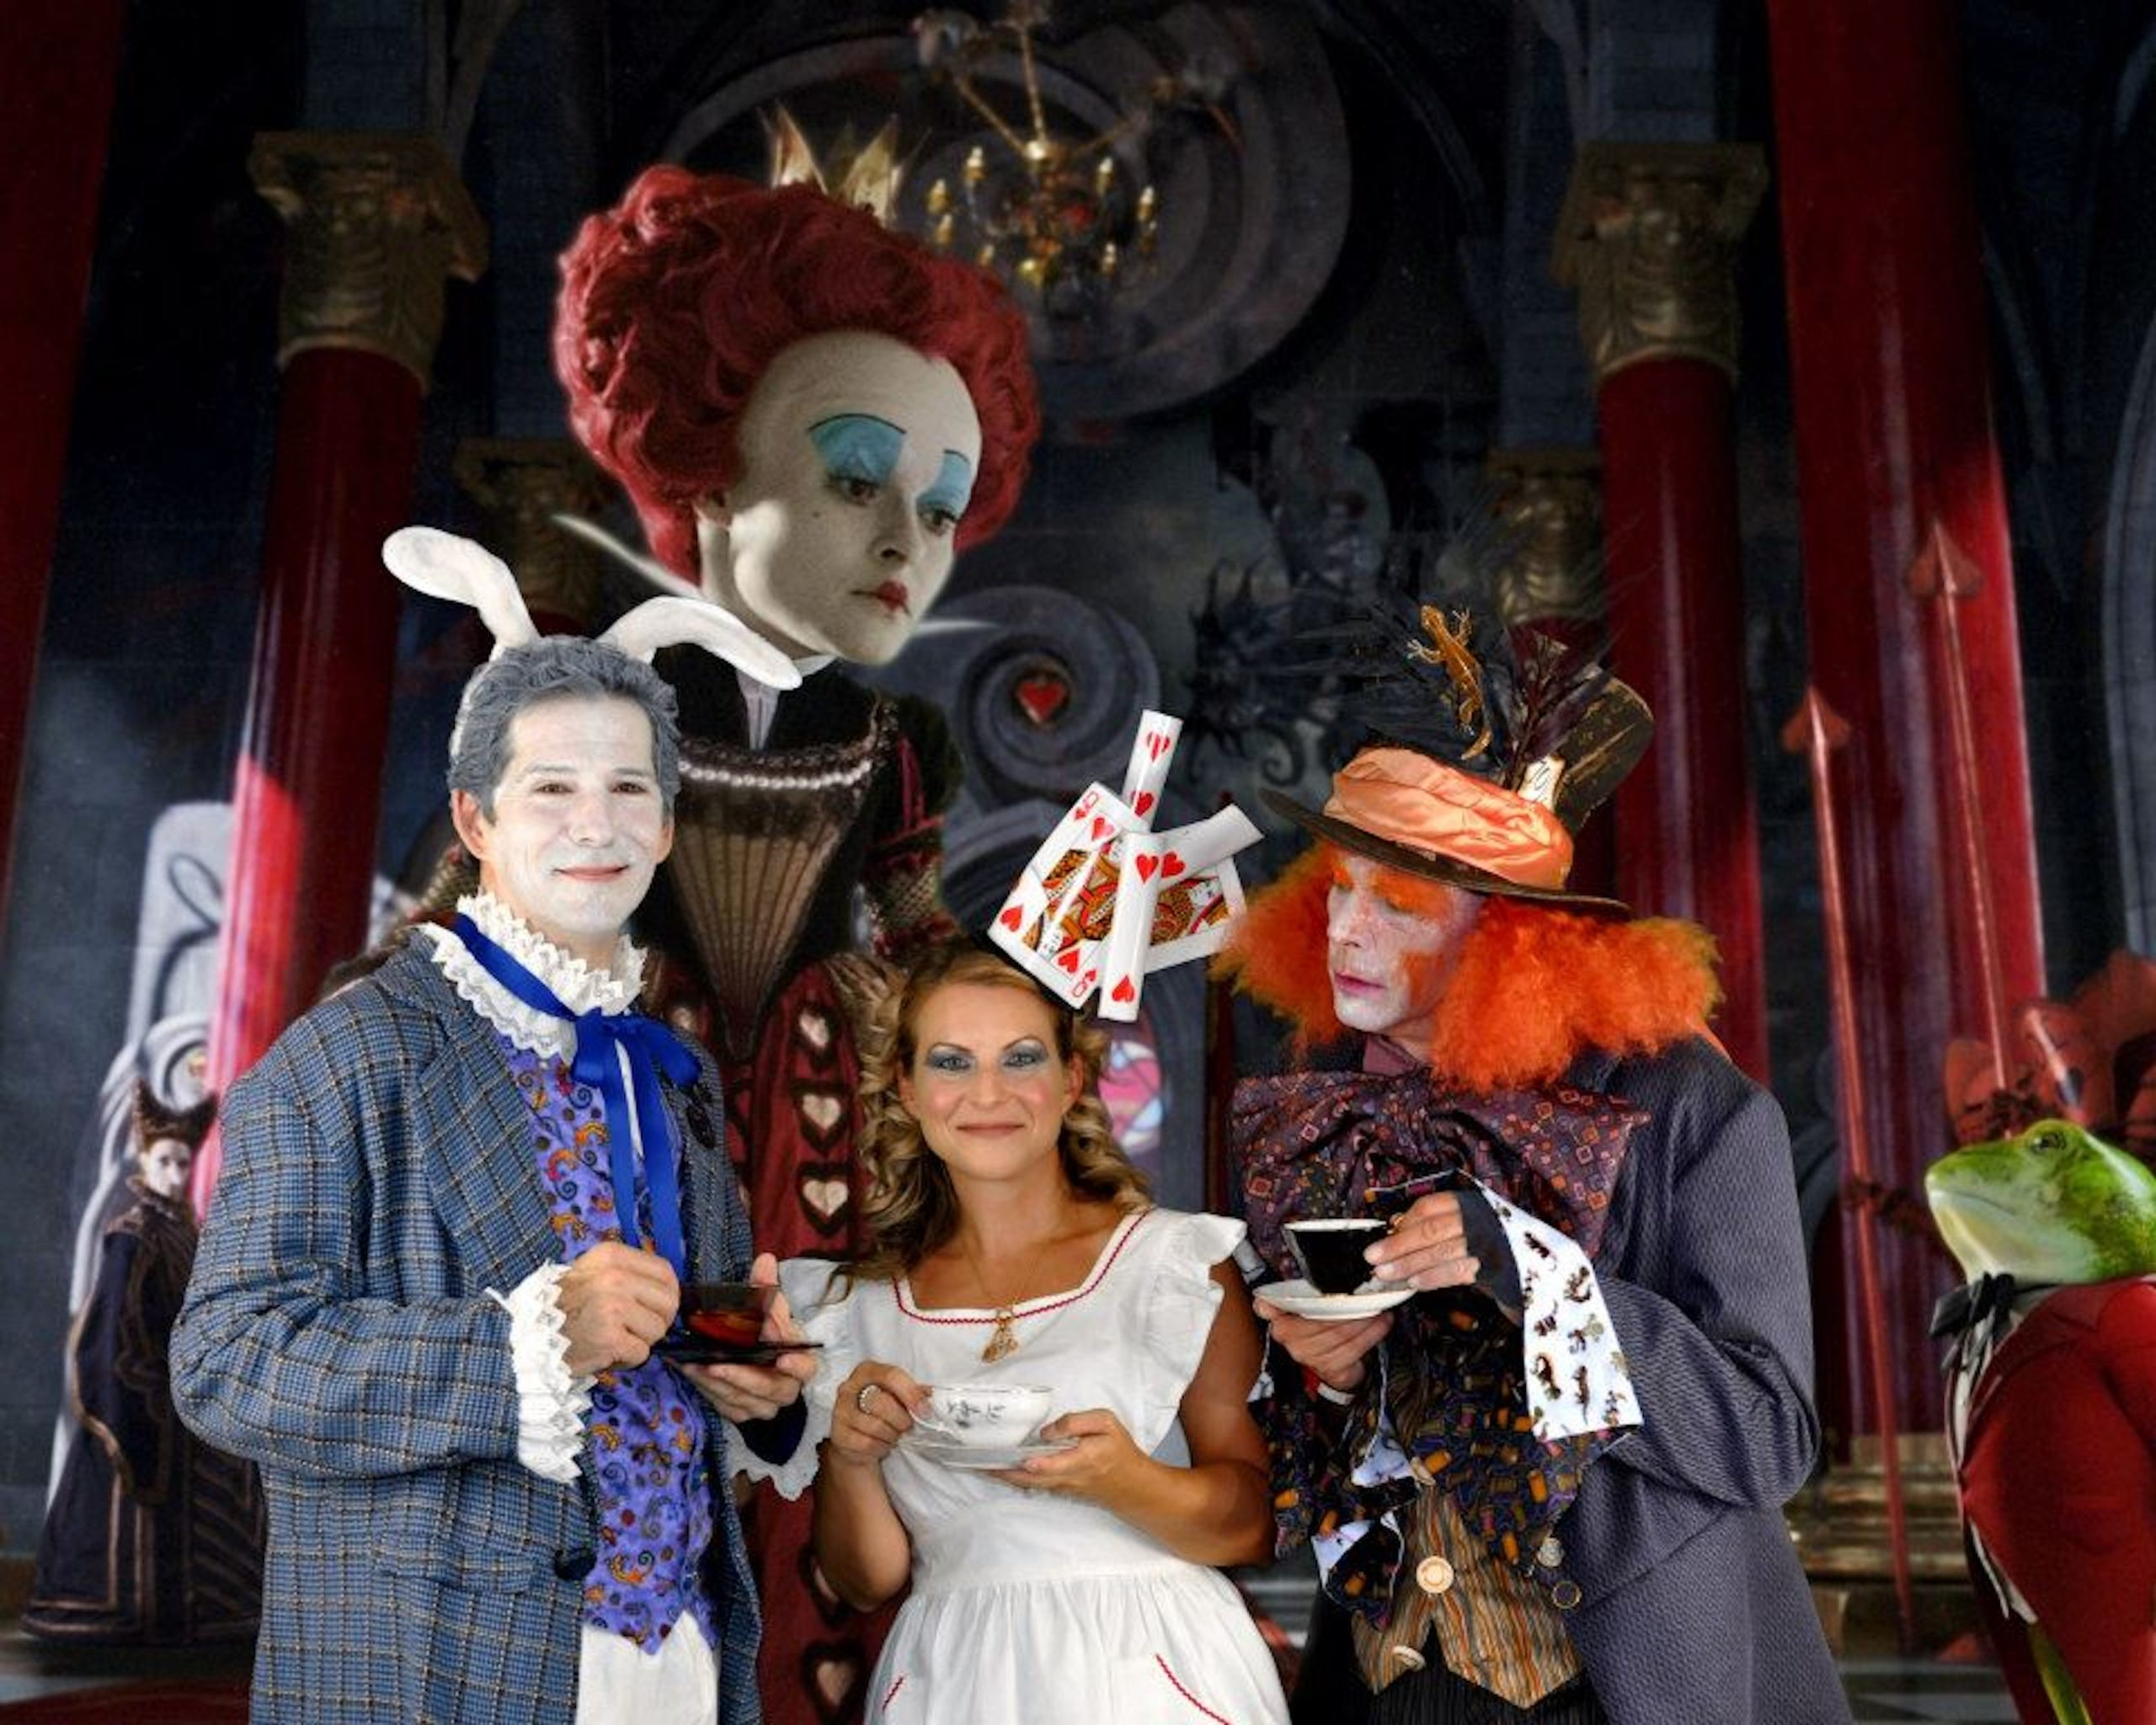 Three people in Alice and Wonderland-themed costumes pose in front of a giant Queen of Hearts background.